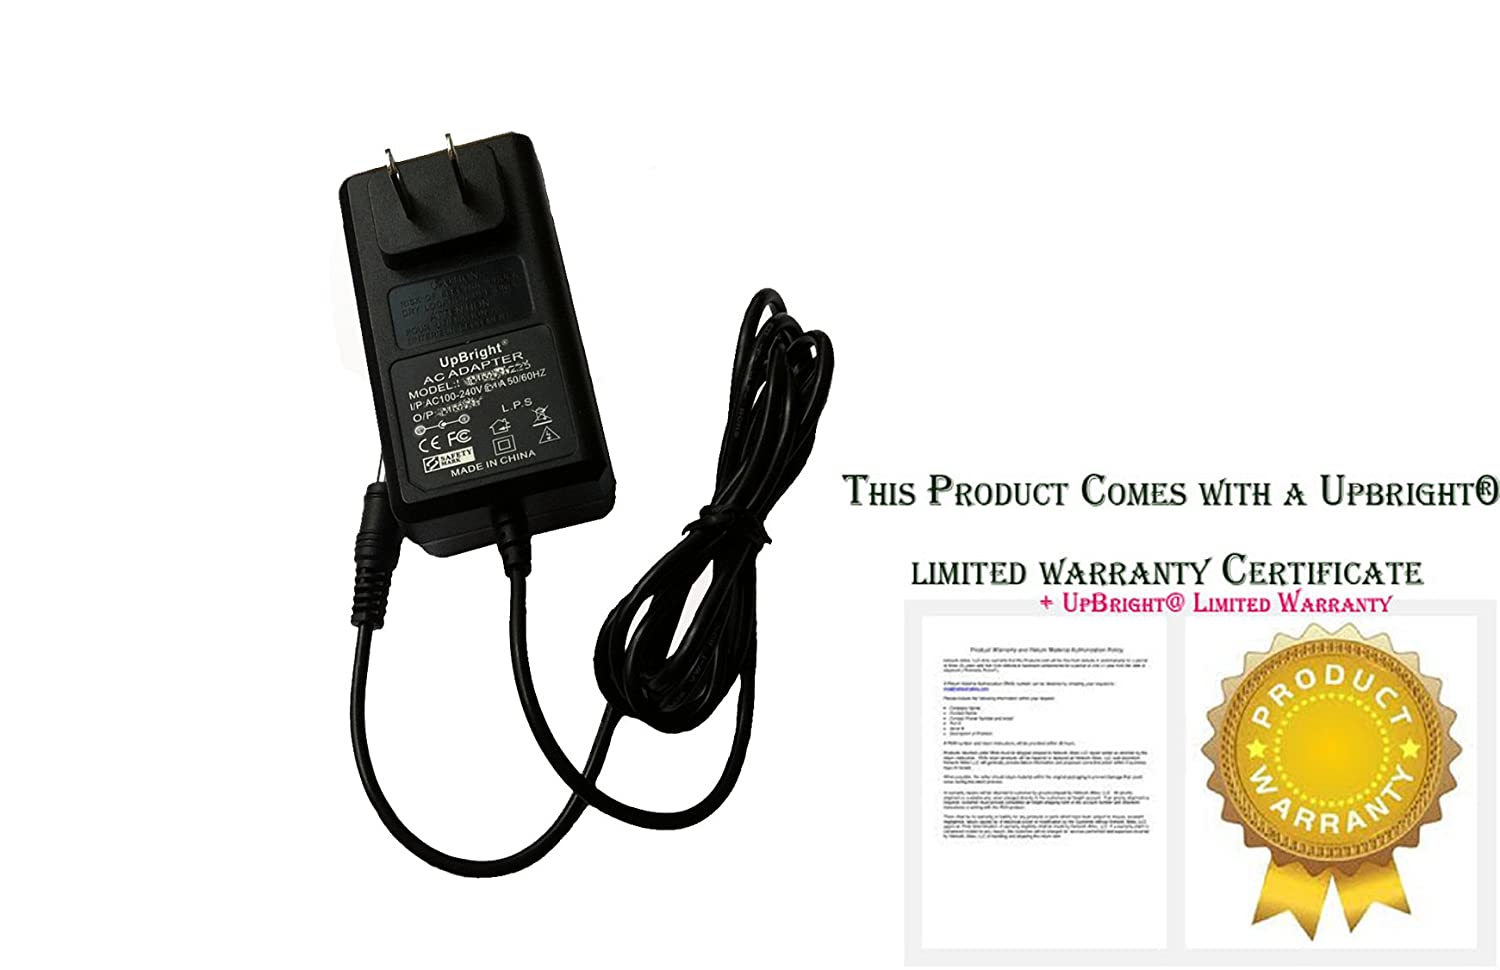 71Z4oL9qynL._SL1500_ amazon com upbright new ac dc adapter for element electronics  at creativeand.co